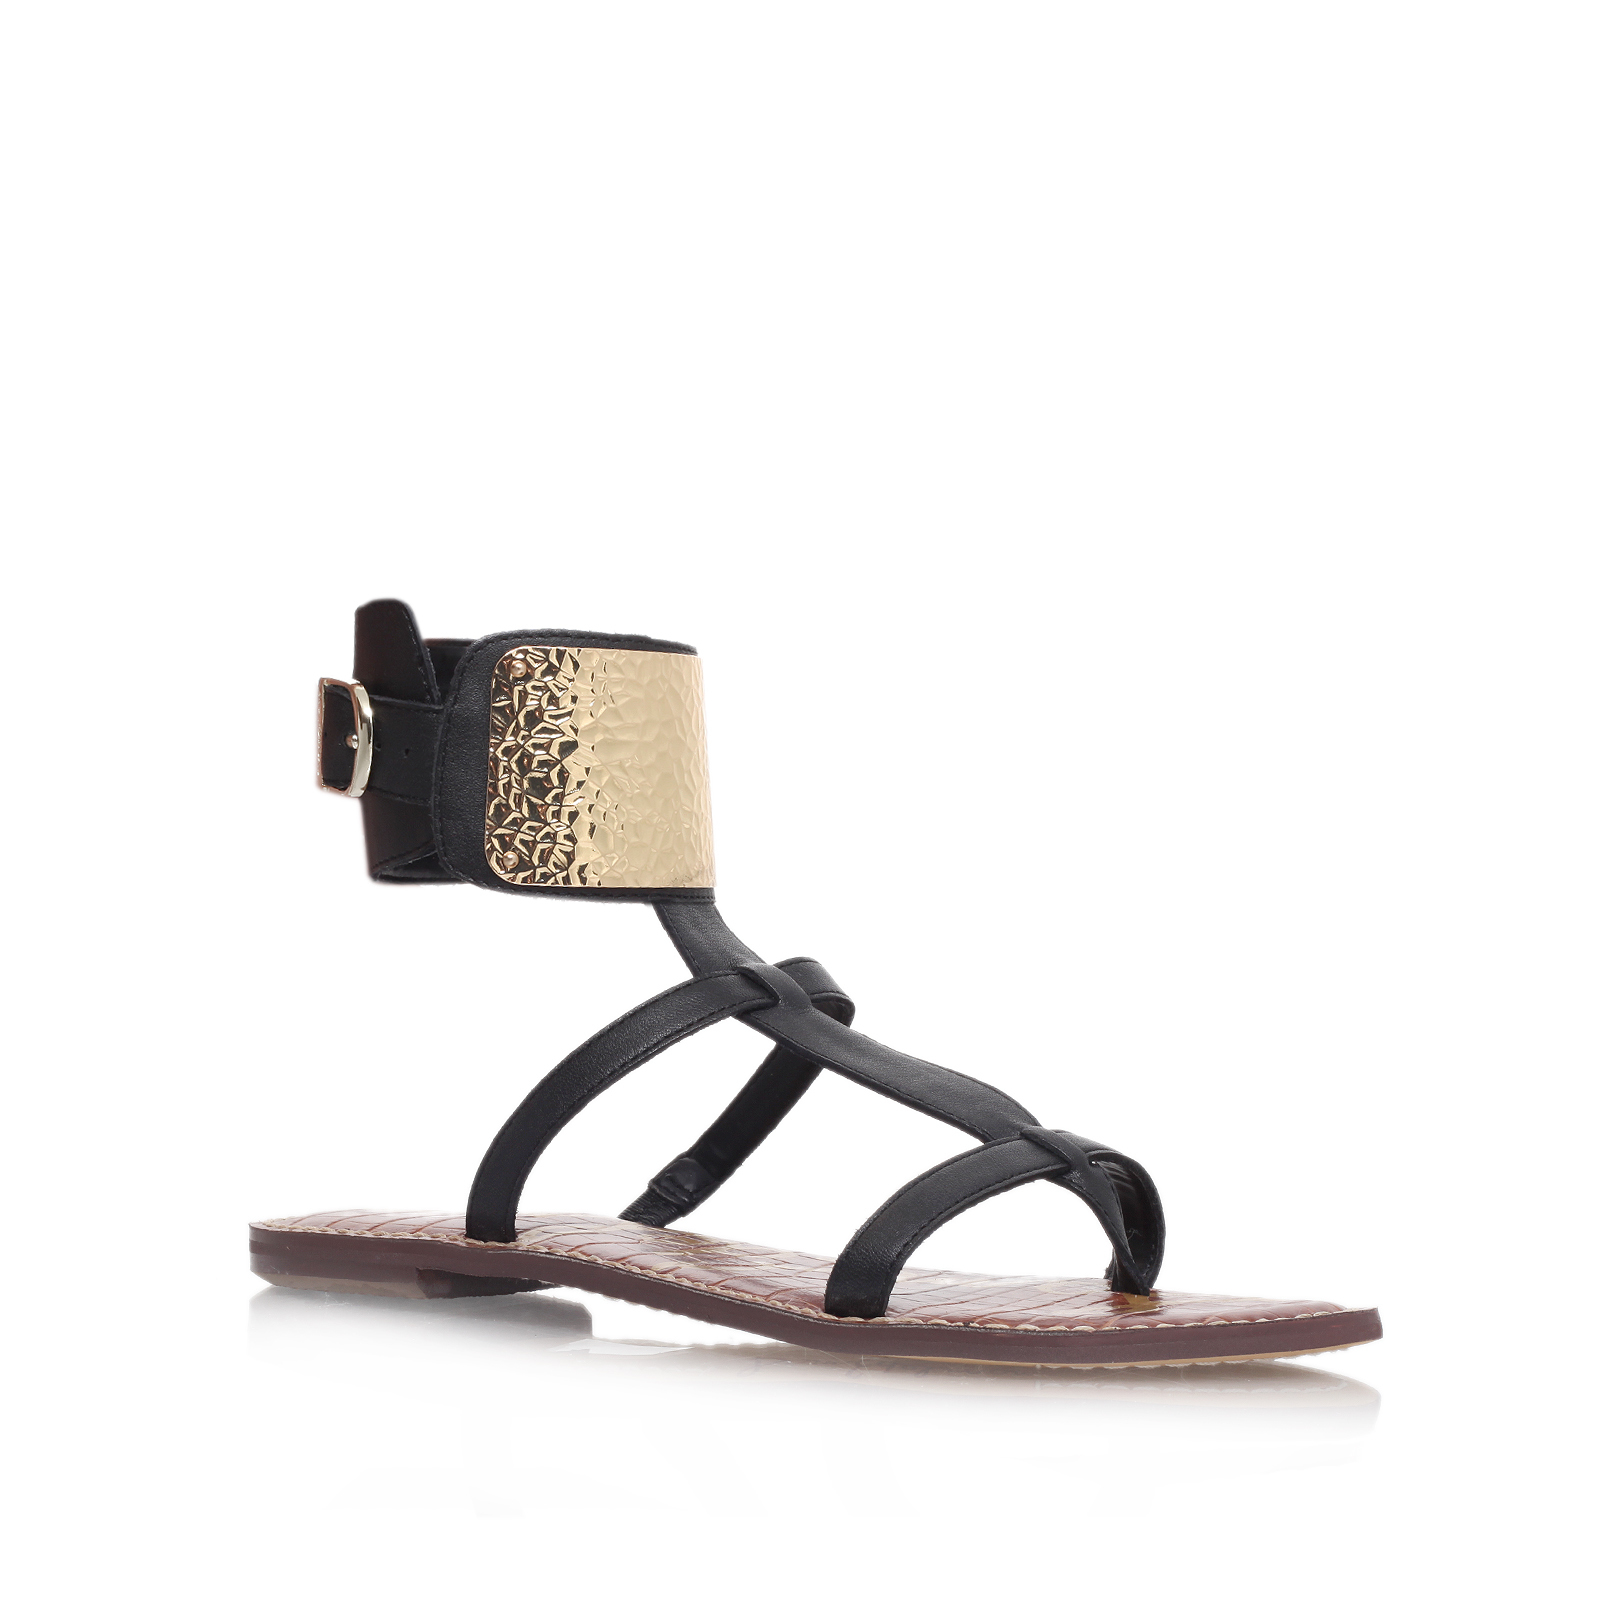 c434565c2d20 GENETTE Sam-Edel Genette Black Leather Sandals by SAM EDELMAN